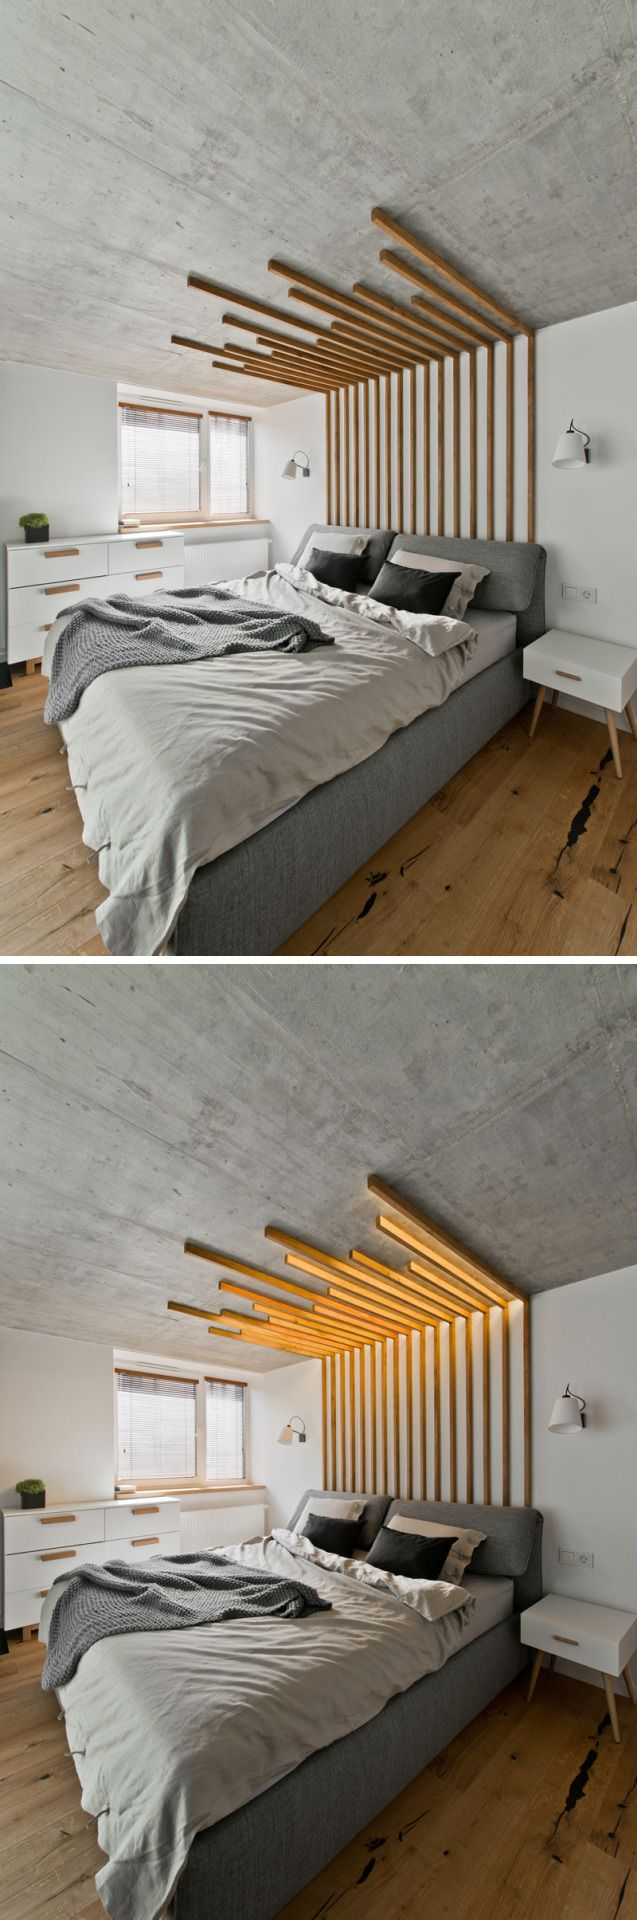 Prague commercial interior design news mindful design consulting - Interior Architect Indre Sunklodiene Of Inarch In Vilnius Lithuania Decorative Wood Feature Piece Above The Bed Includes Lighting